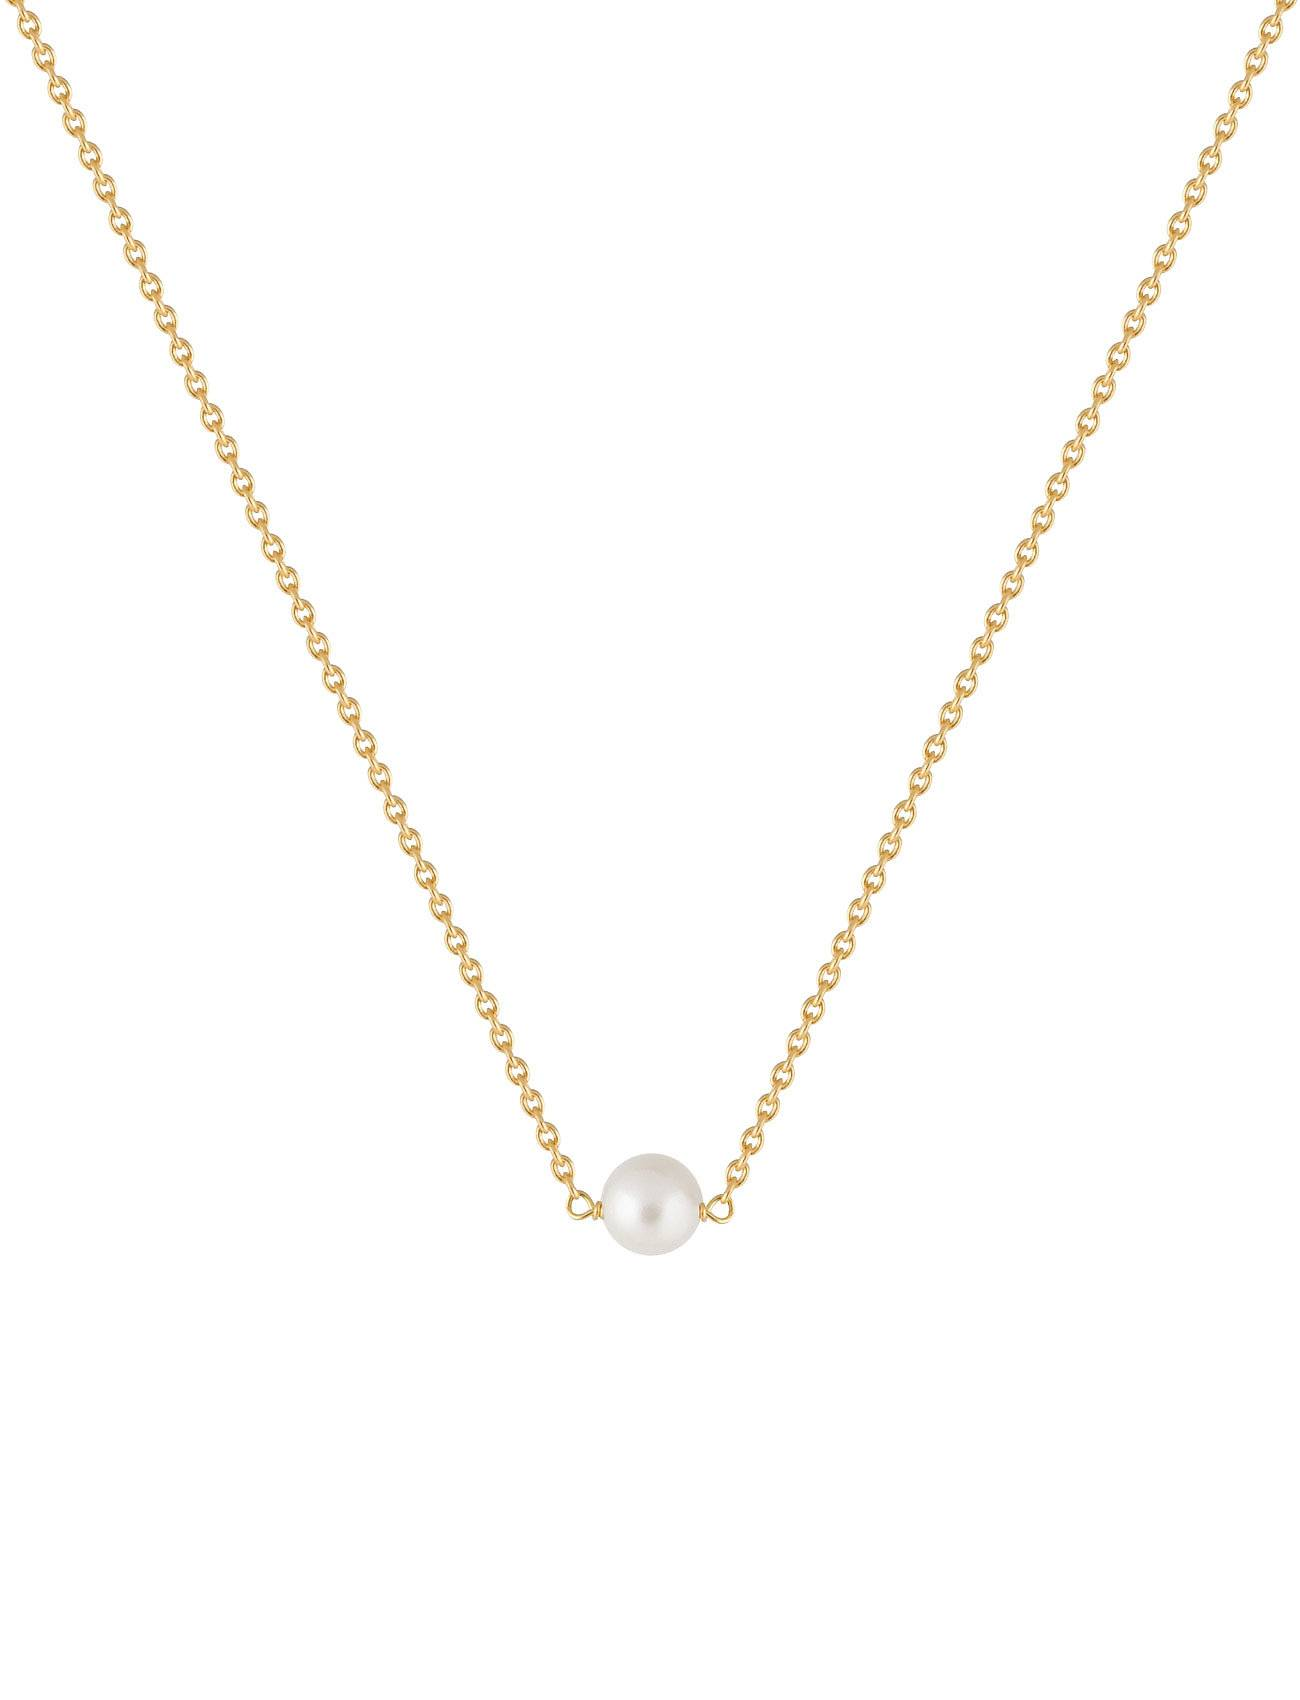 SOPHIE by SOPHIE Pearl Necklace